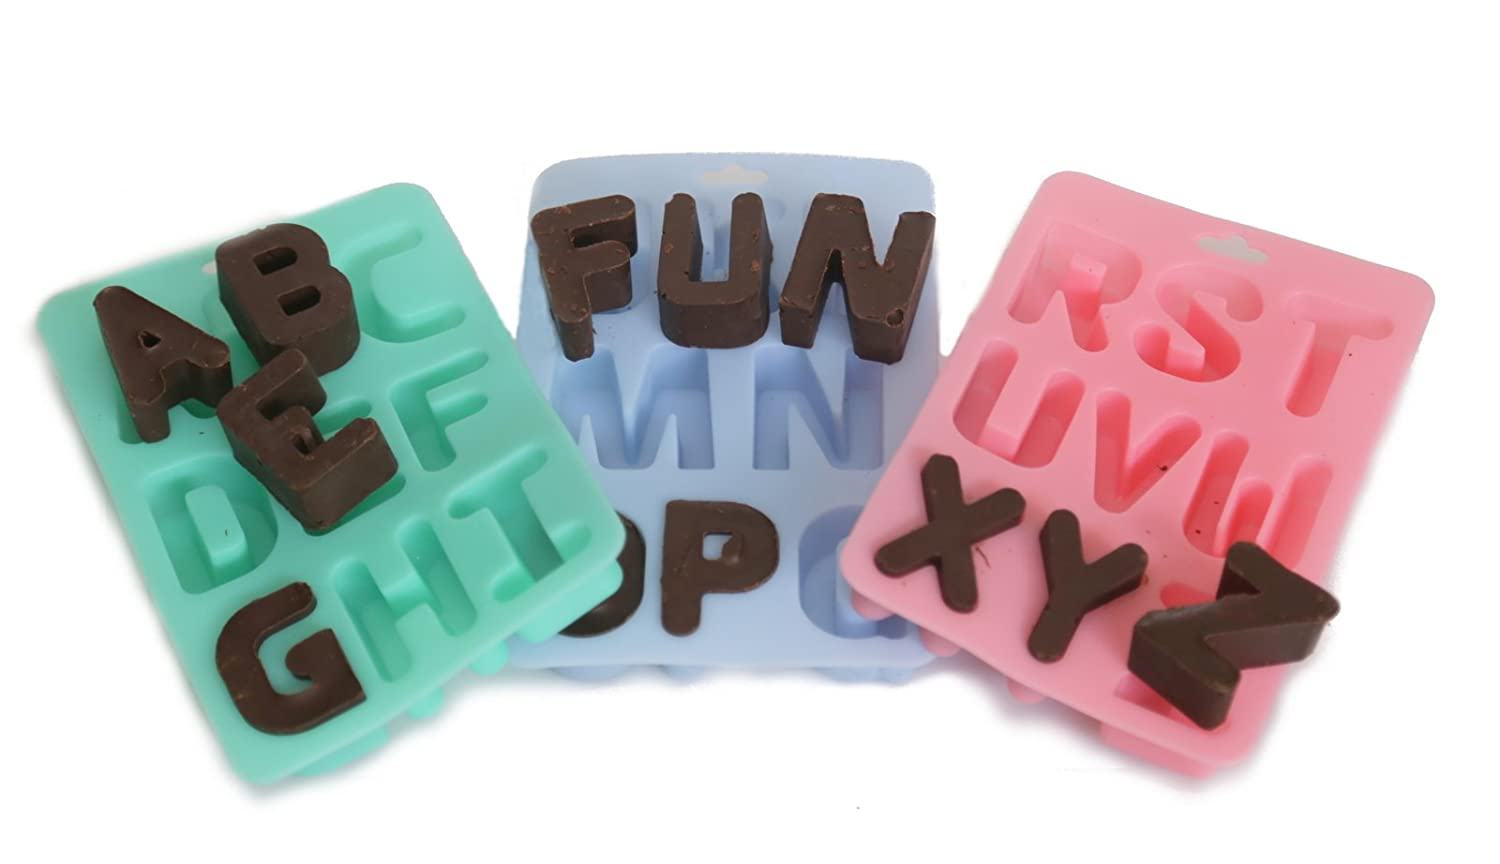 Bebelephant Silycone A to Z Letter Bake/ Ice Tray 11005 Bakeware Ice Trays alphabet tray